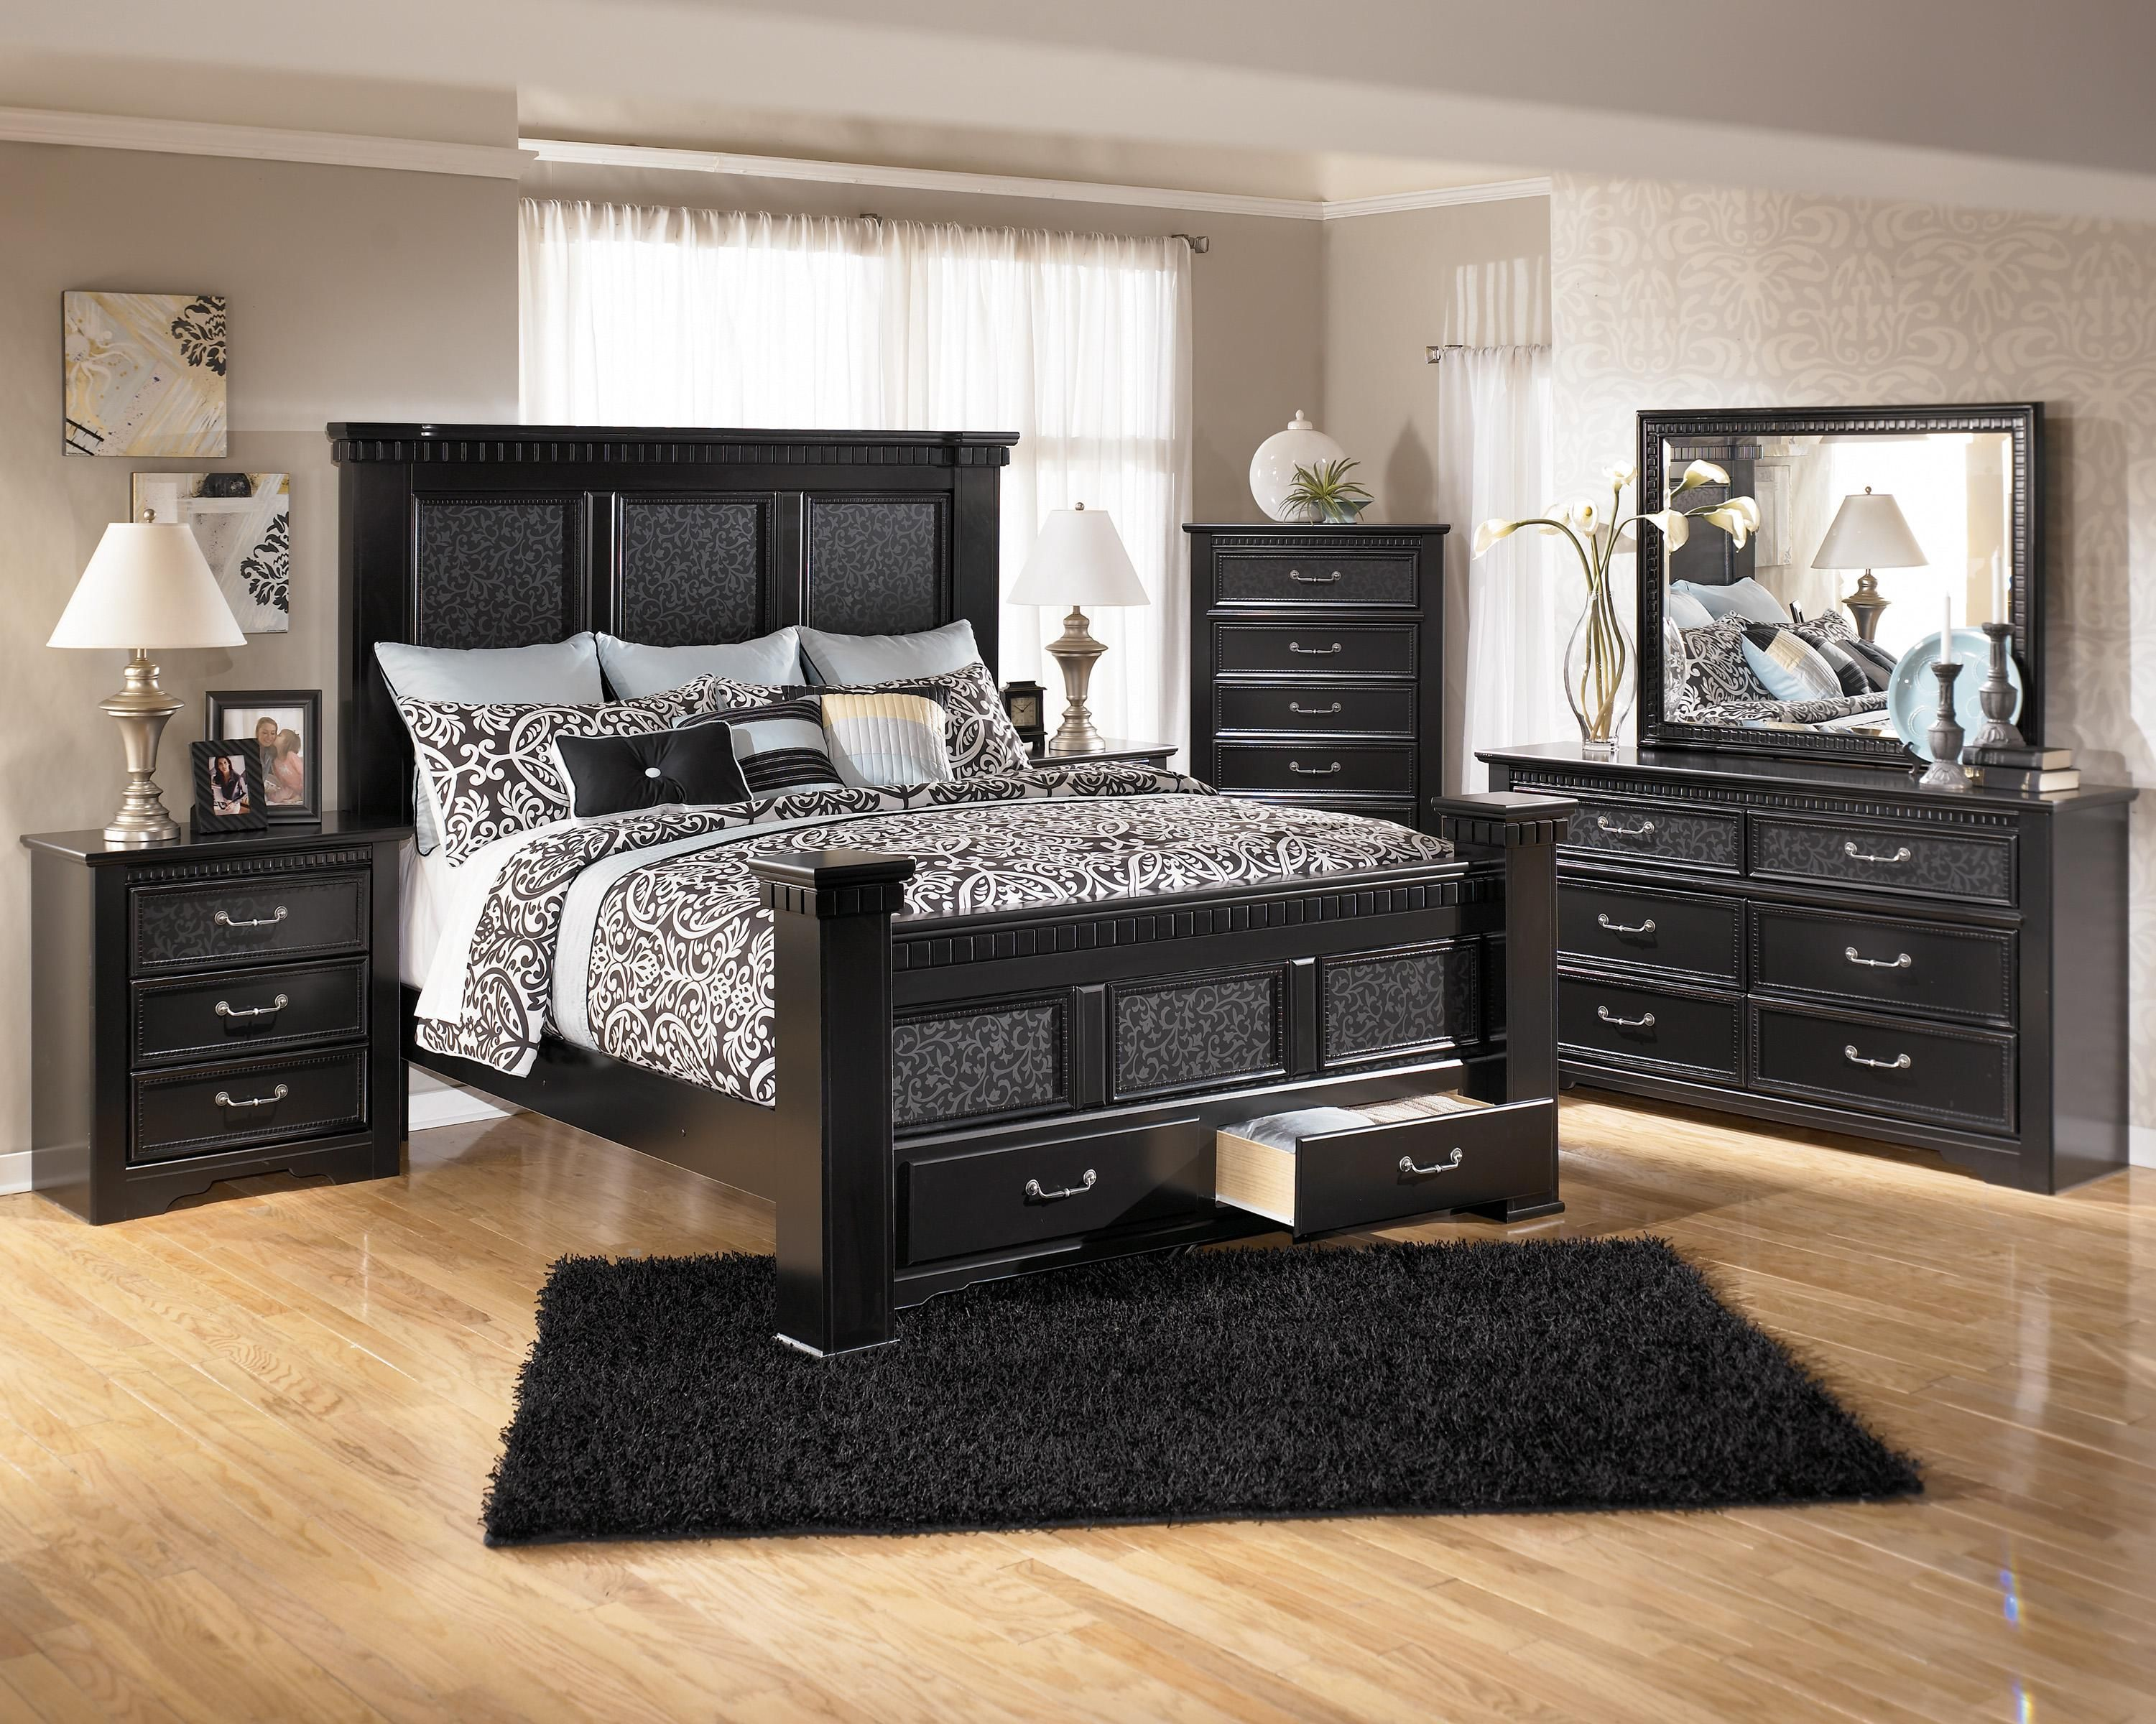 Ashley bedroom furniture black - Ashley Furniture Cavallino Bedroom Set With Mansion Poster Bed Storage Footboard Bed Only 799 95